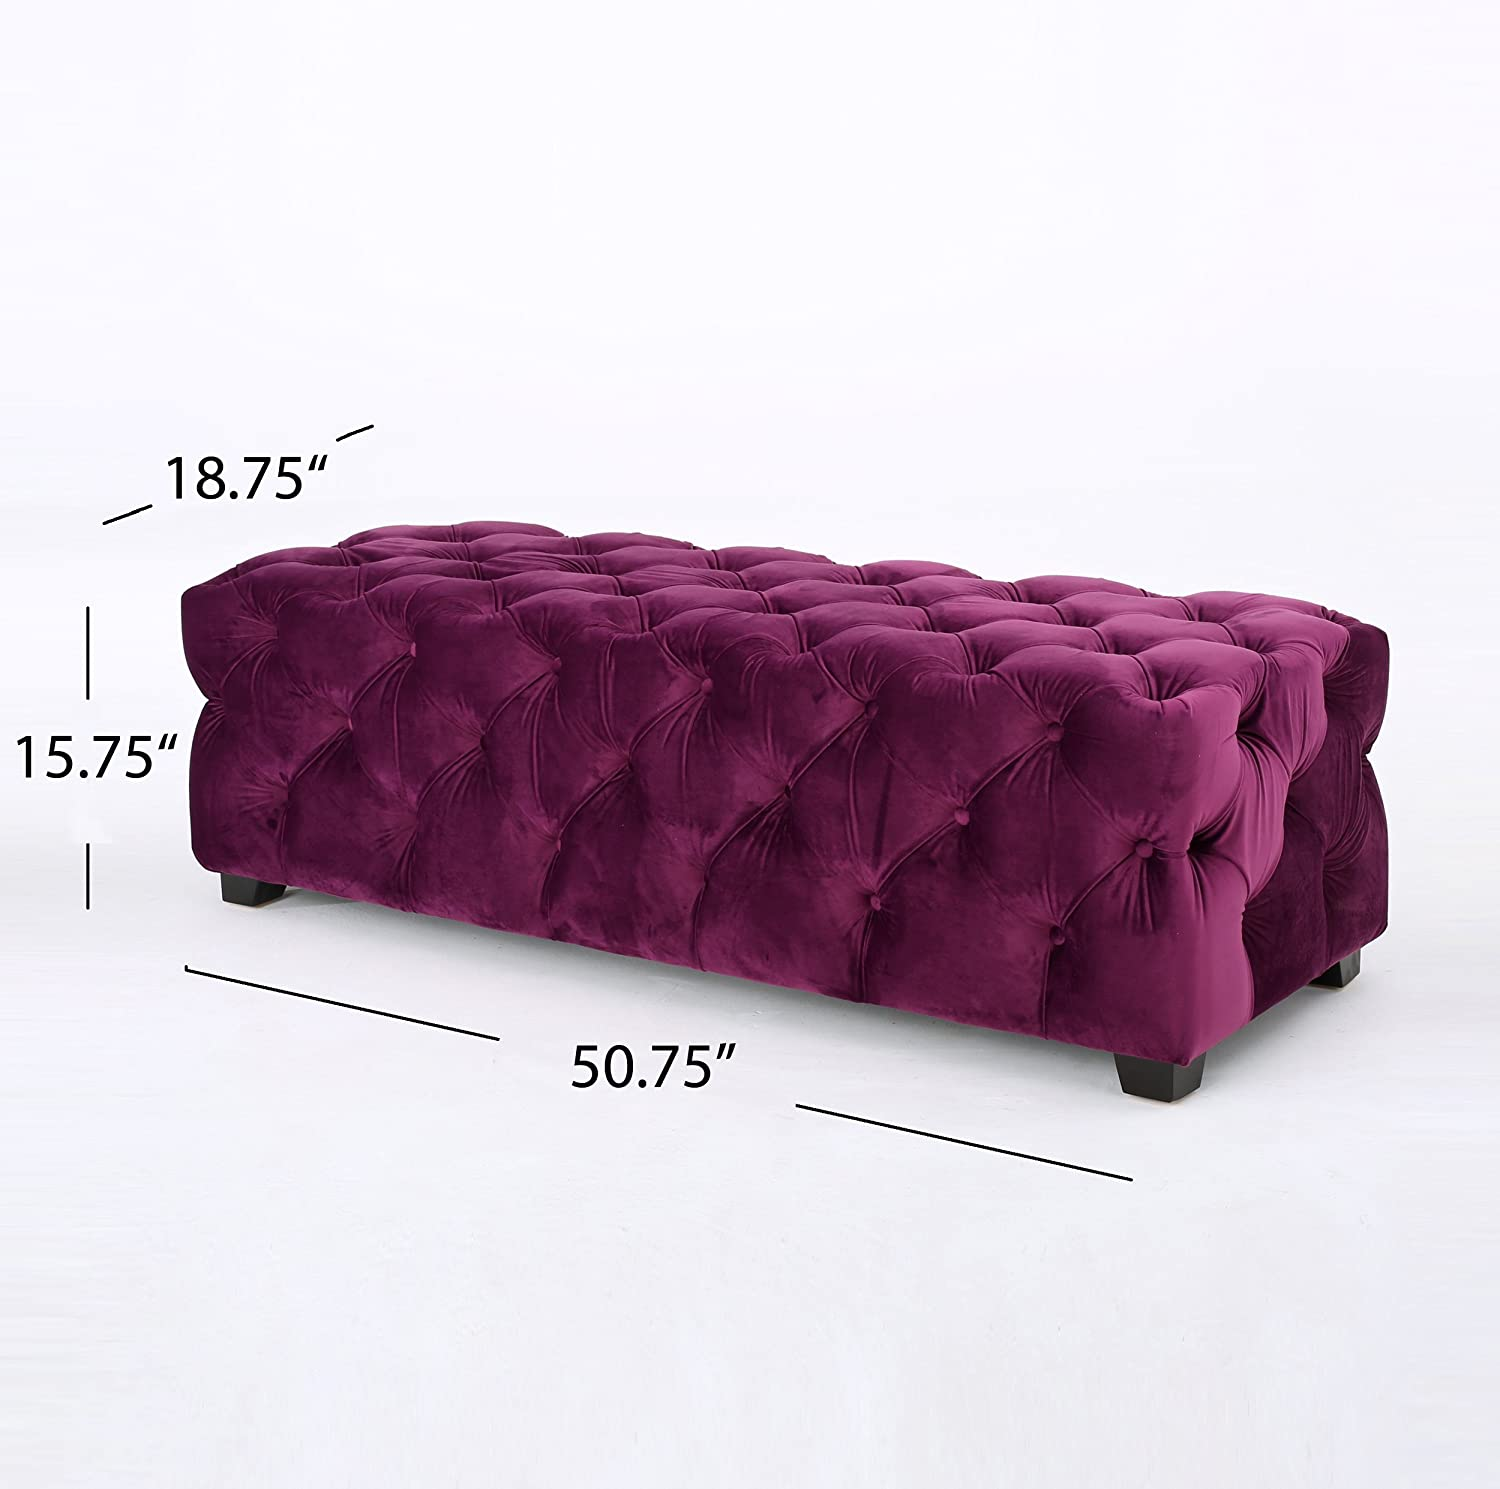 Great Deal Furniture 298422 Provence Purple Tufted Velvet Fabric Rectangle Ottoman Bench